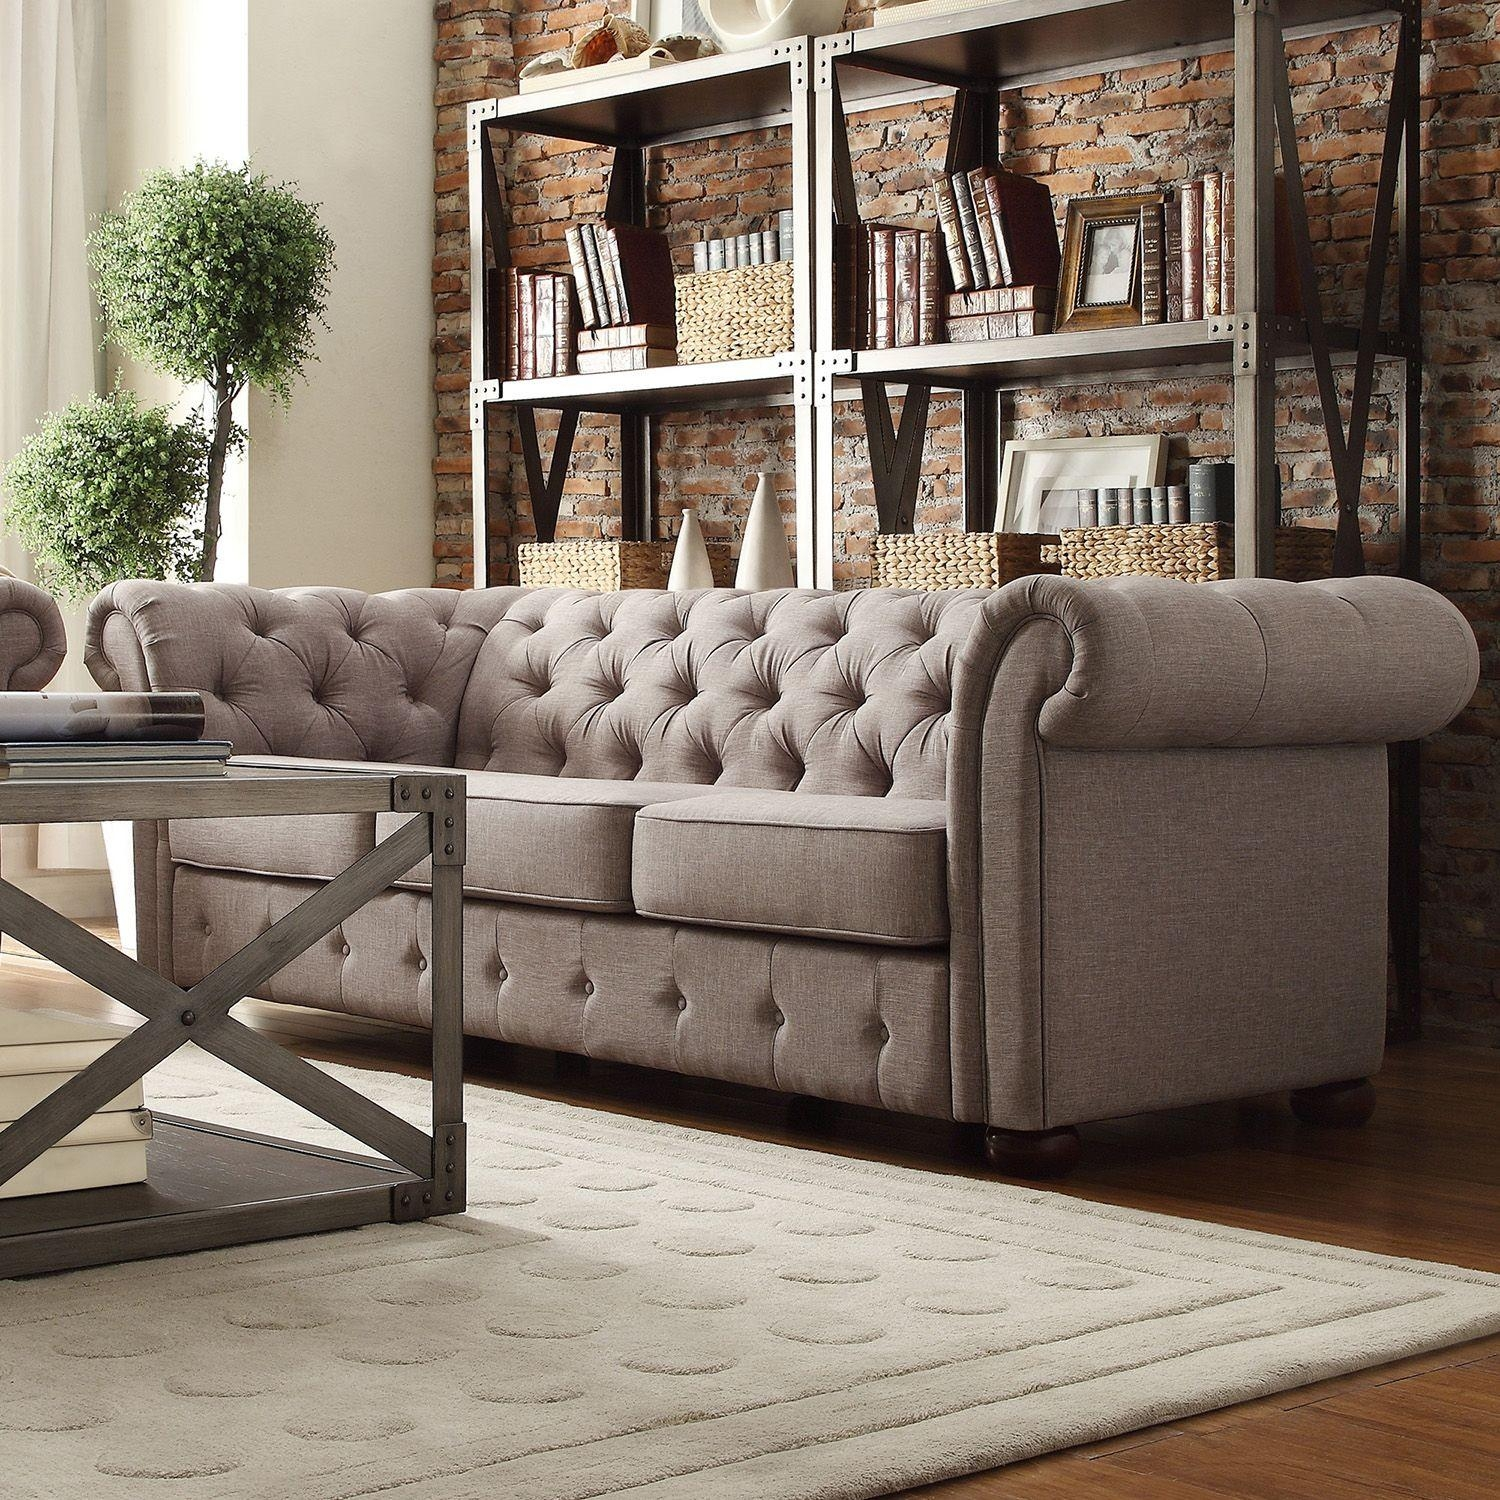 Sofas : Magnificent Leather Chesterfield Suites Sofa Couch Throughout Cheap Tufted Sofas (Image 15 of 23)